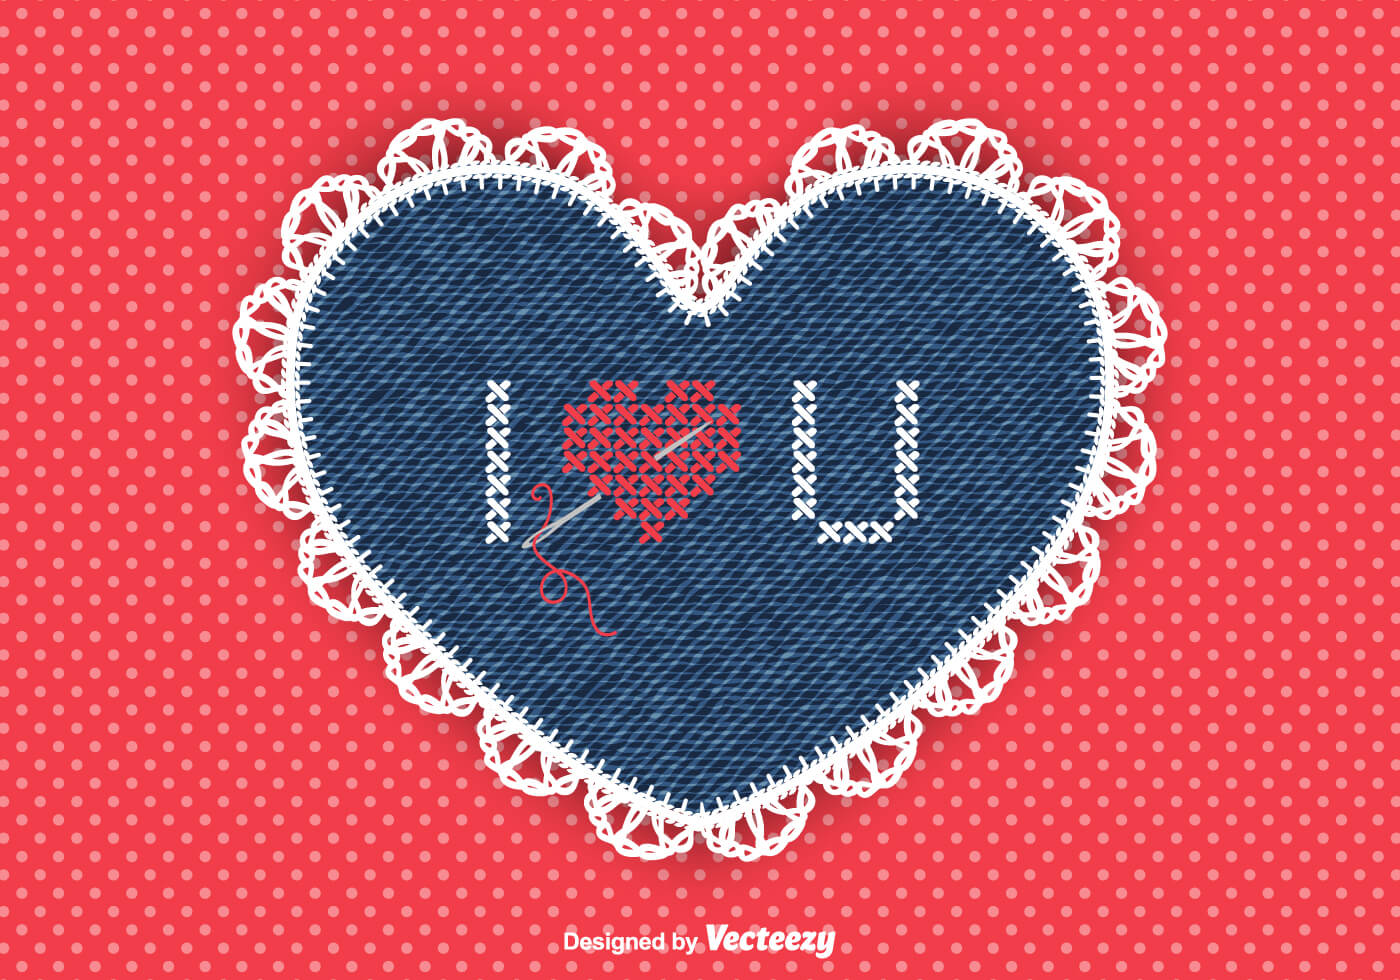 Needlework Google image from https://static.vecteezy.com/system/resources/previews/000/094/133/original/free-vector-needlework-heart.jpg